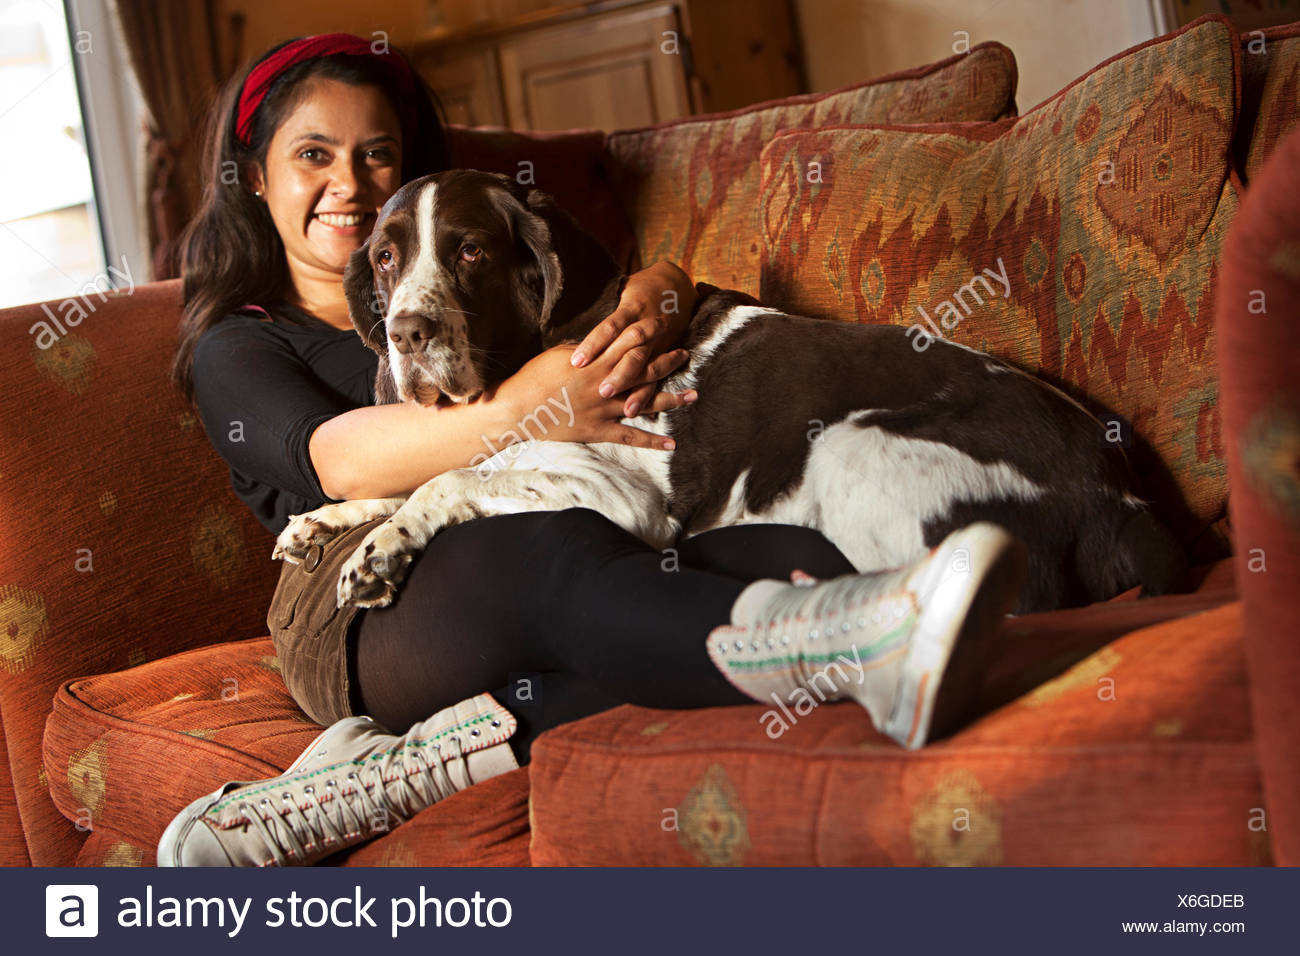 Woman sitting on couch with her dog - Stock Image